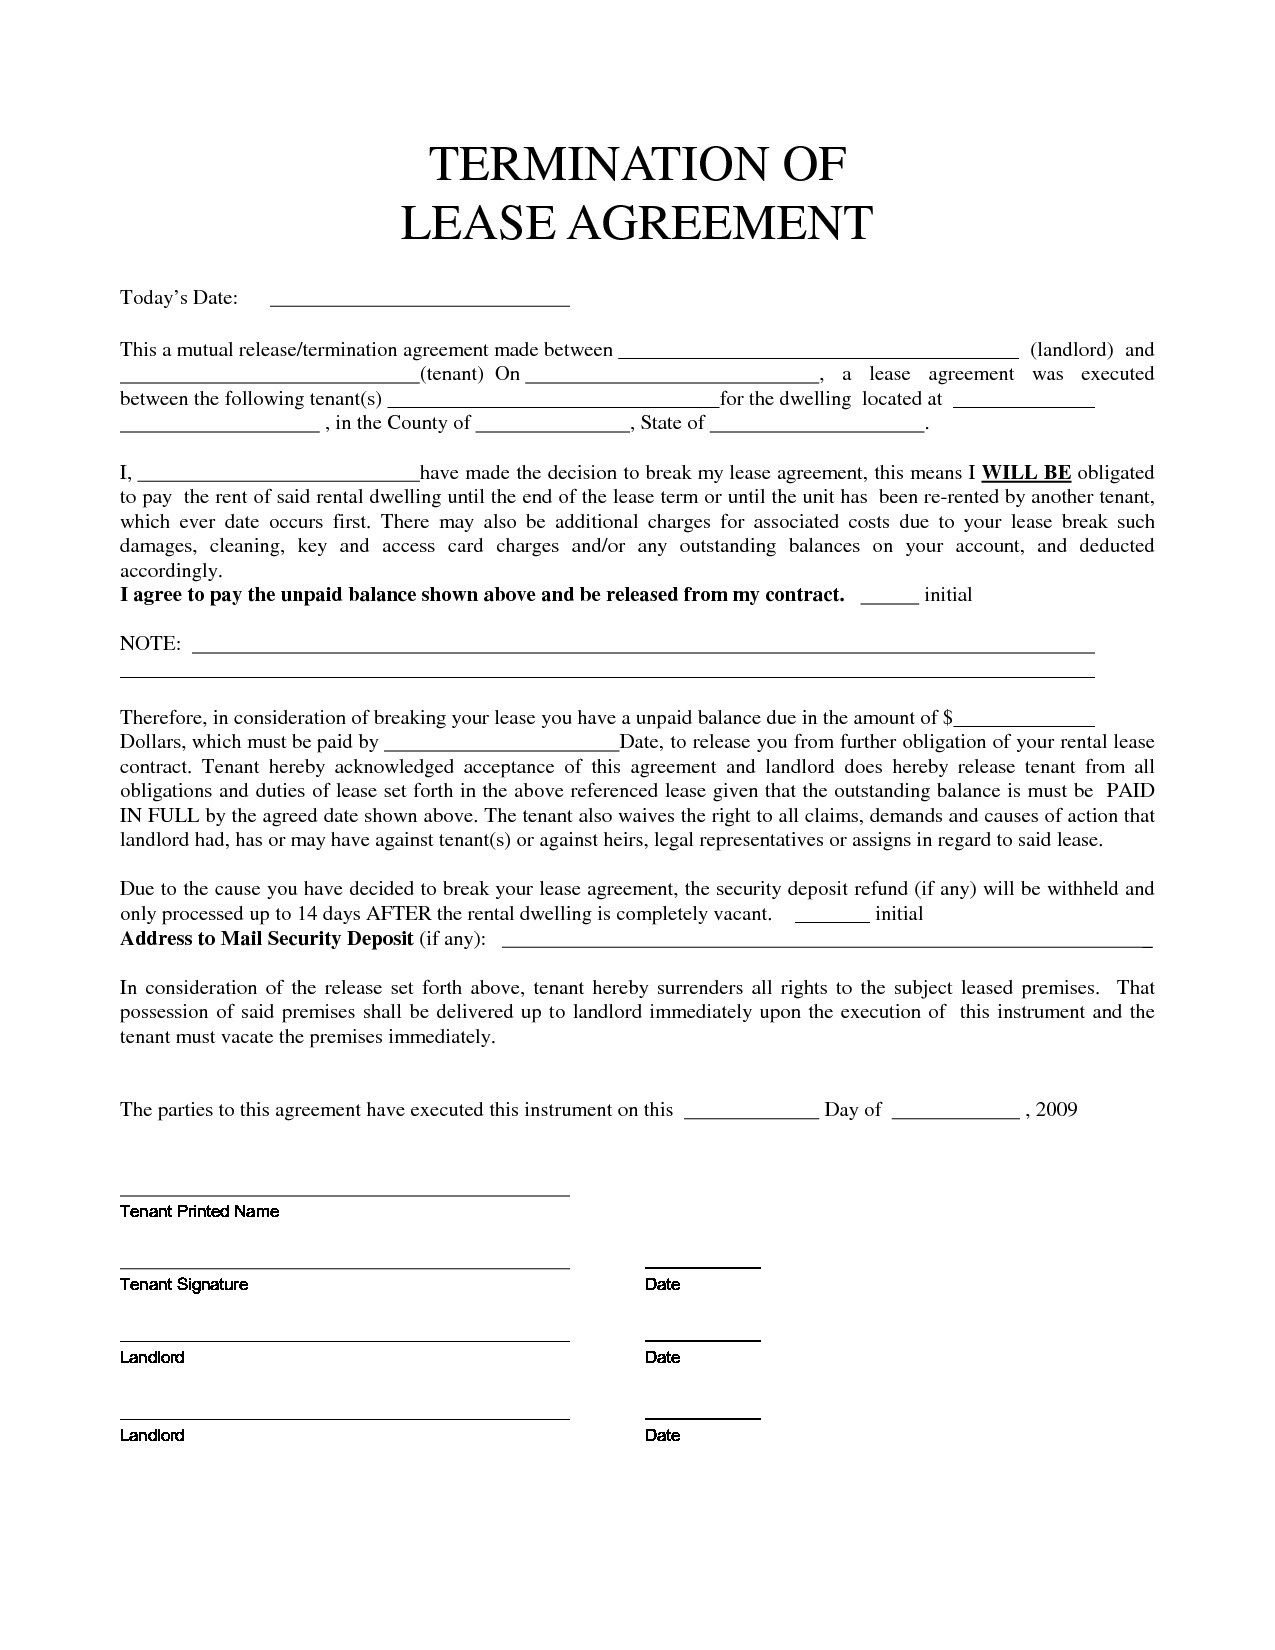 Lease Agreement Cancellation Letter Sample